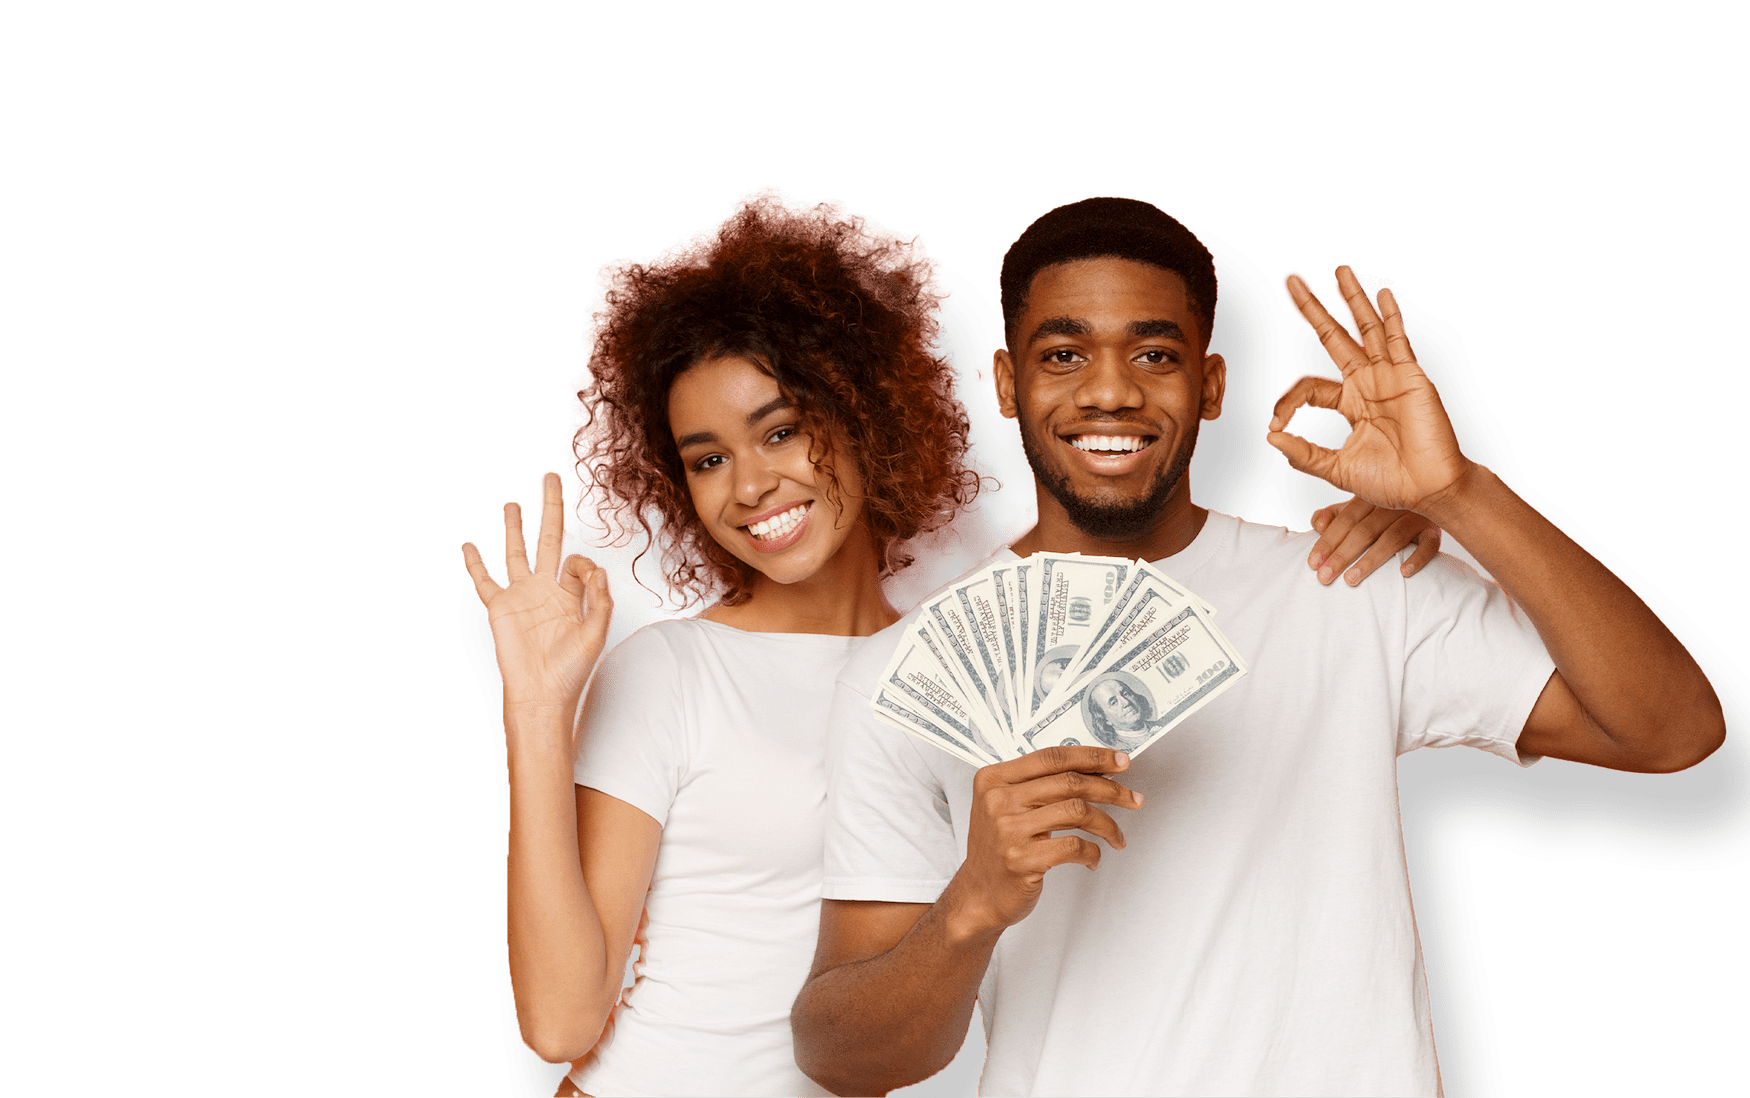 Two people with cash and okay sign